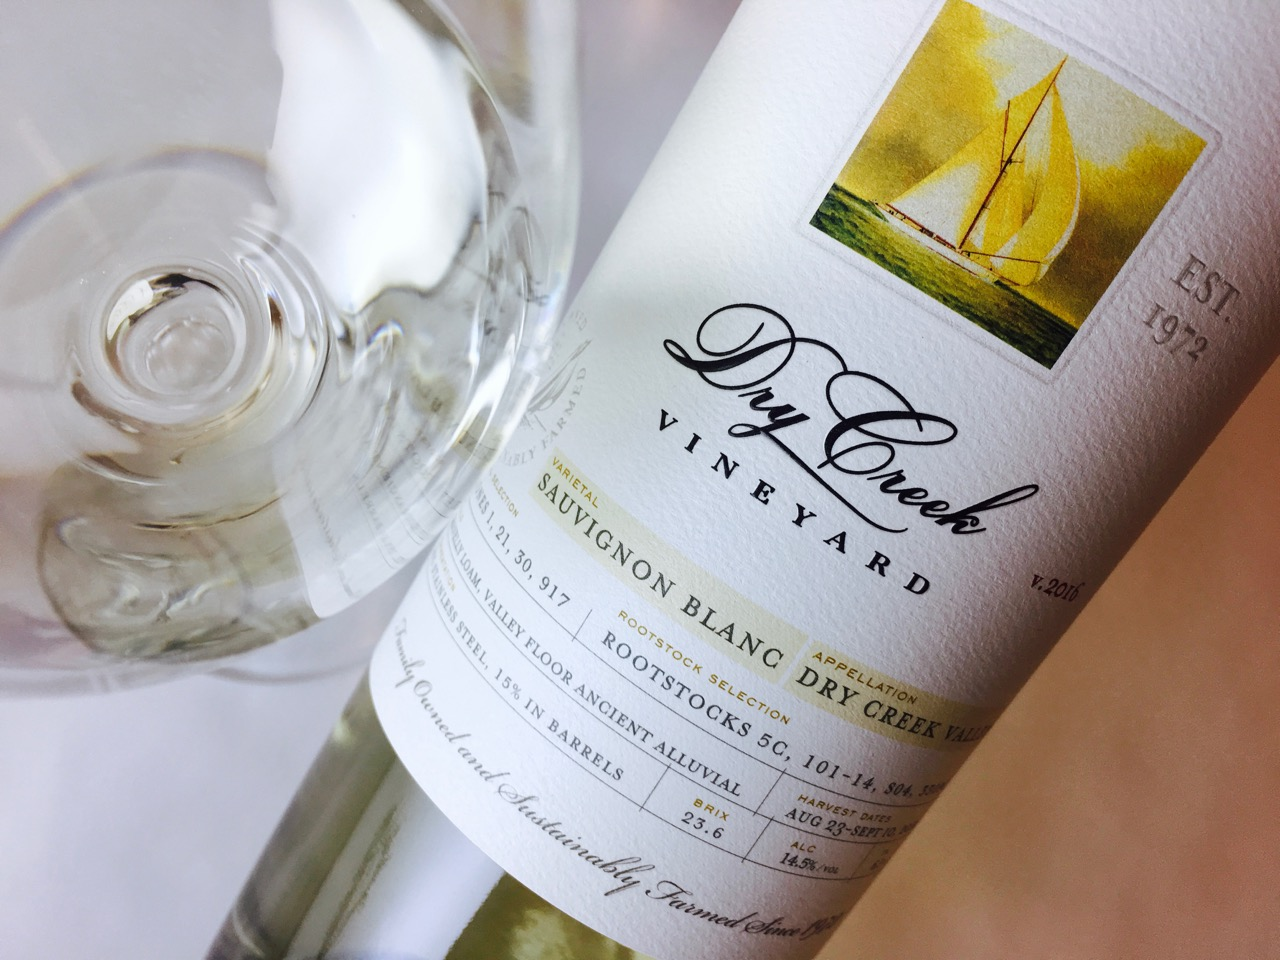 2016 Dry Creek Vineyard Sauvignon Blanc Dry Creek Valley